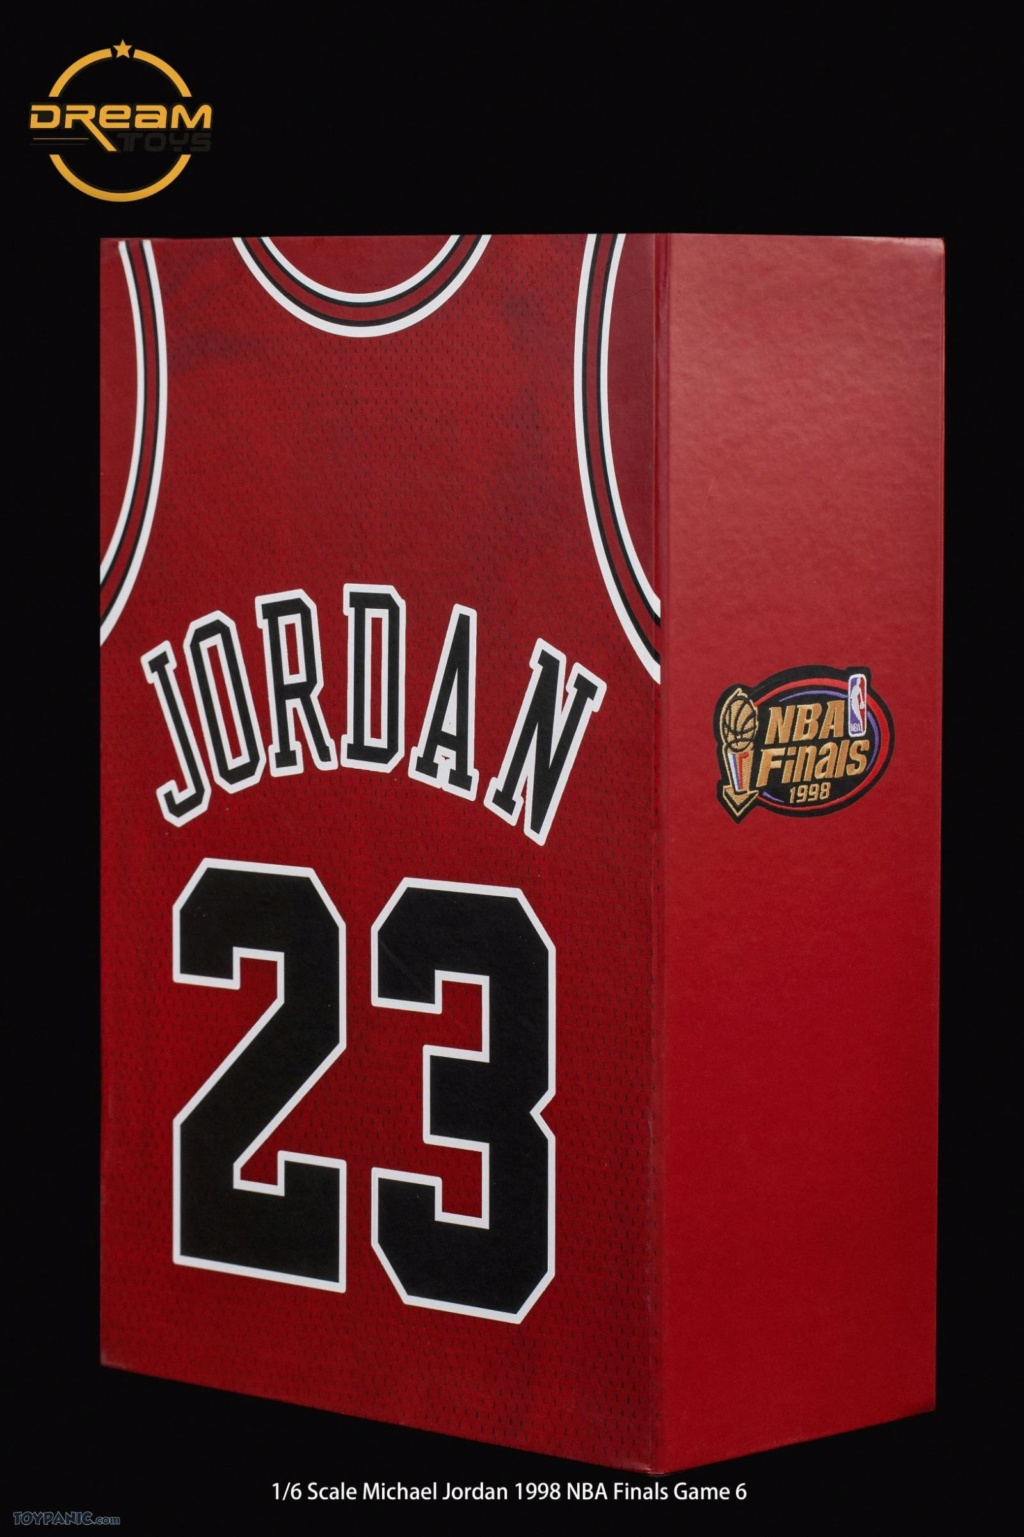 athlete - NEW PRODUCT: DreamToys: NBA Finals Jordan, Bryant, & James 1/6 scale action figures 11420214